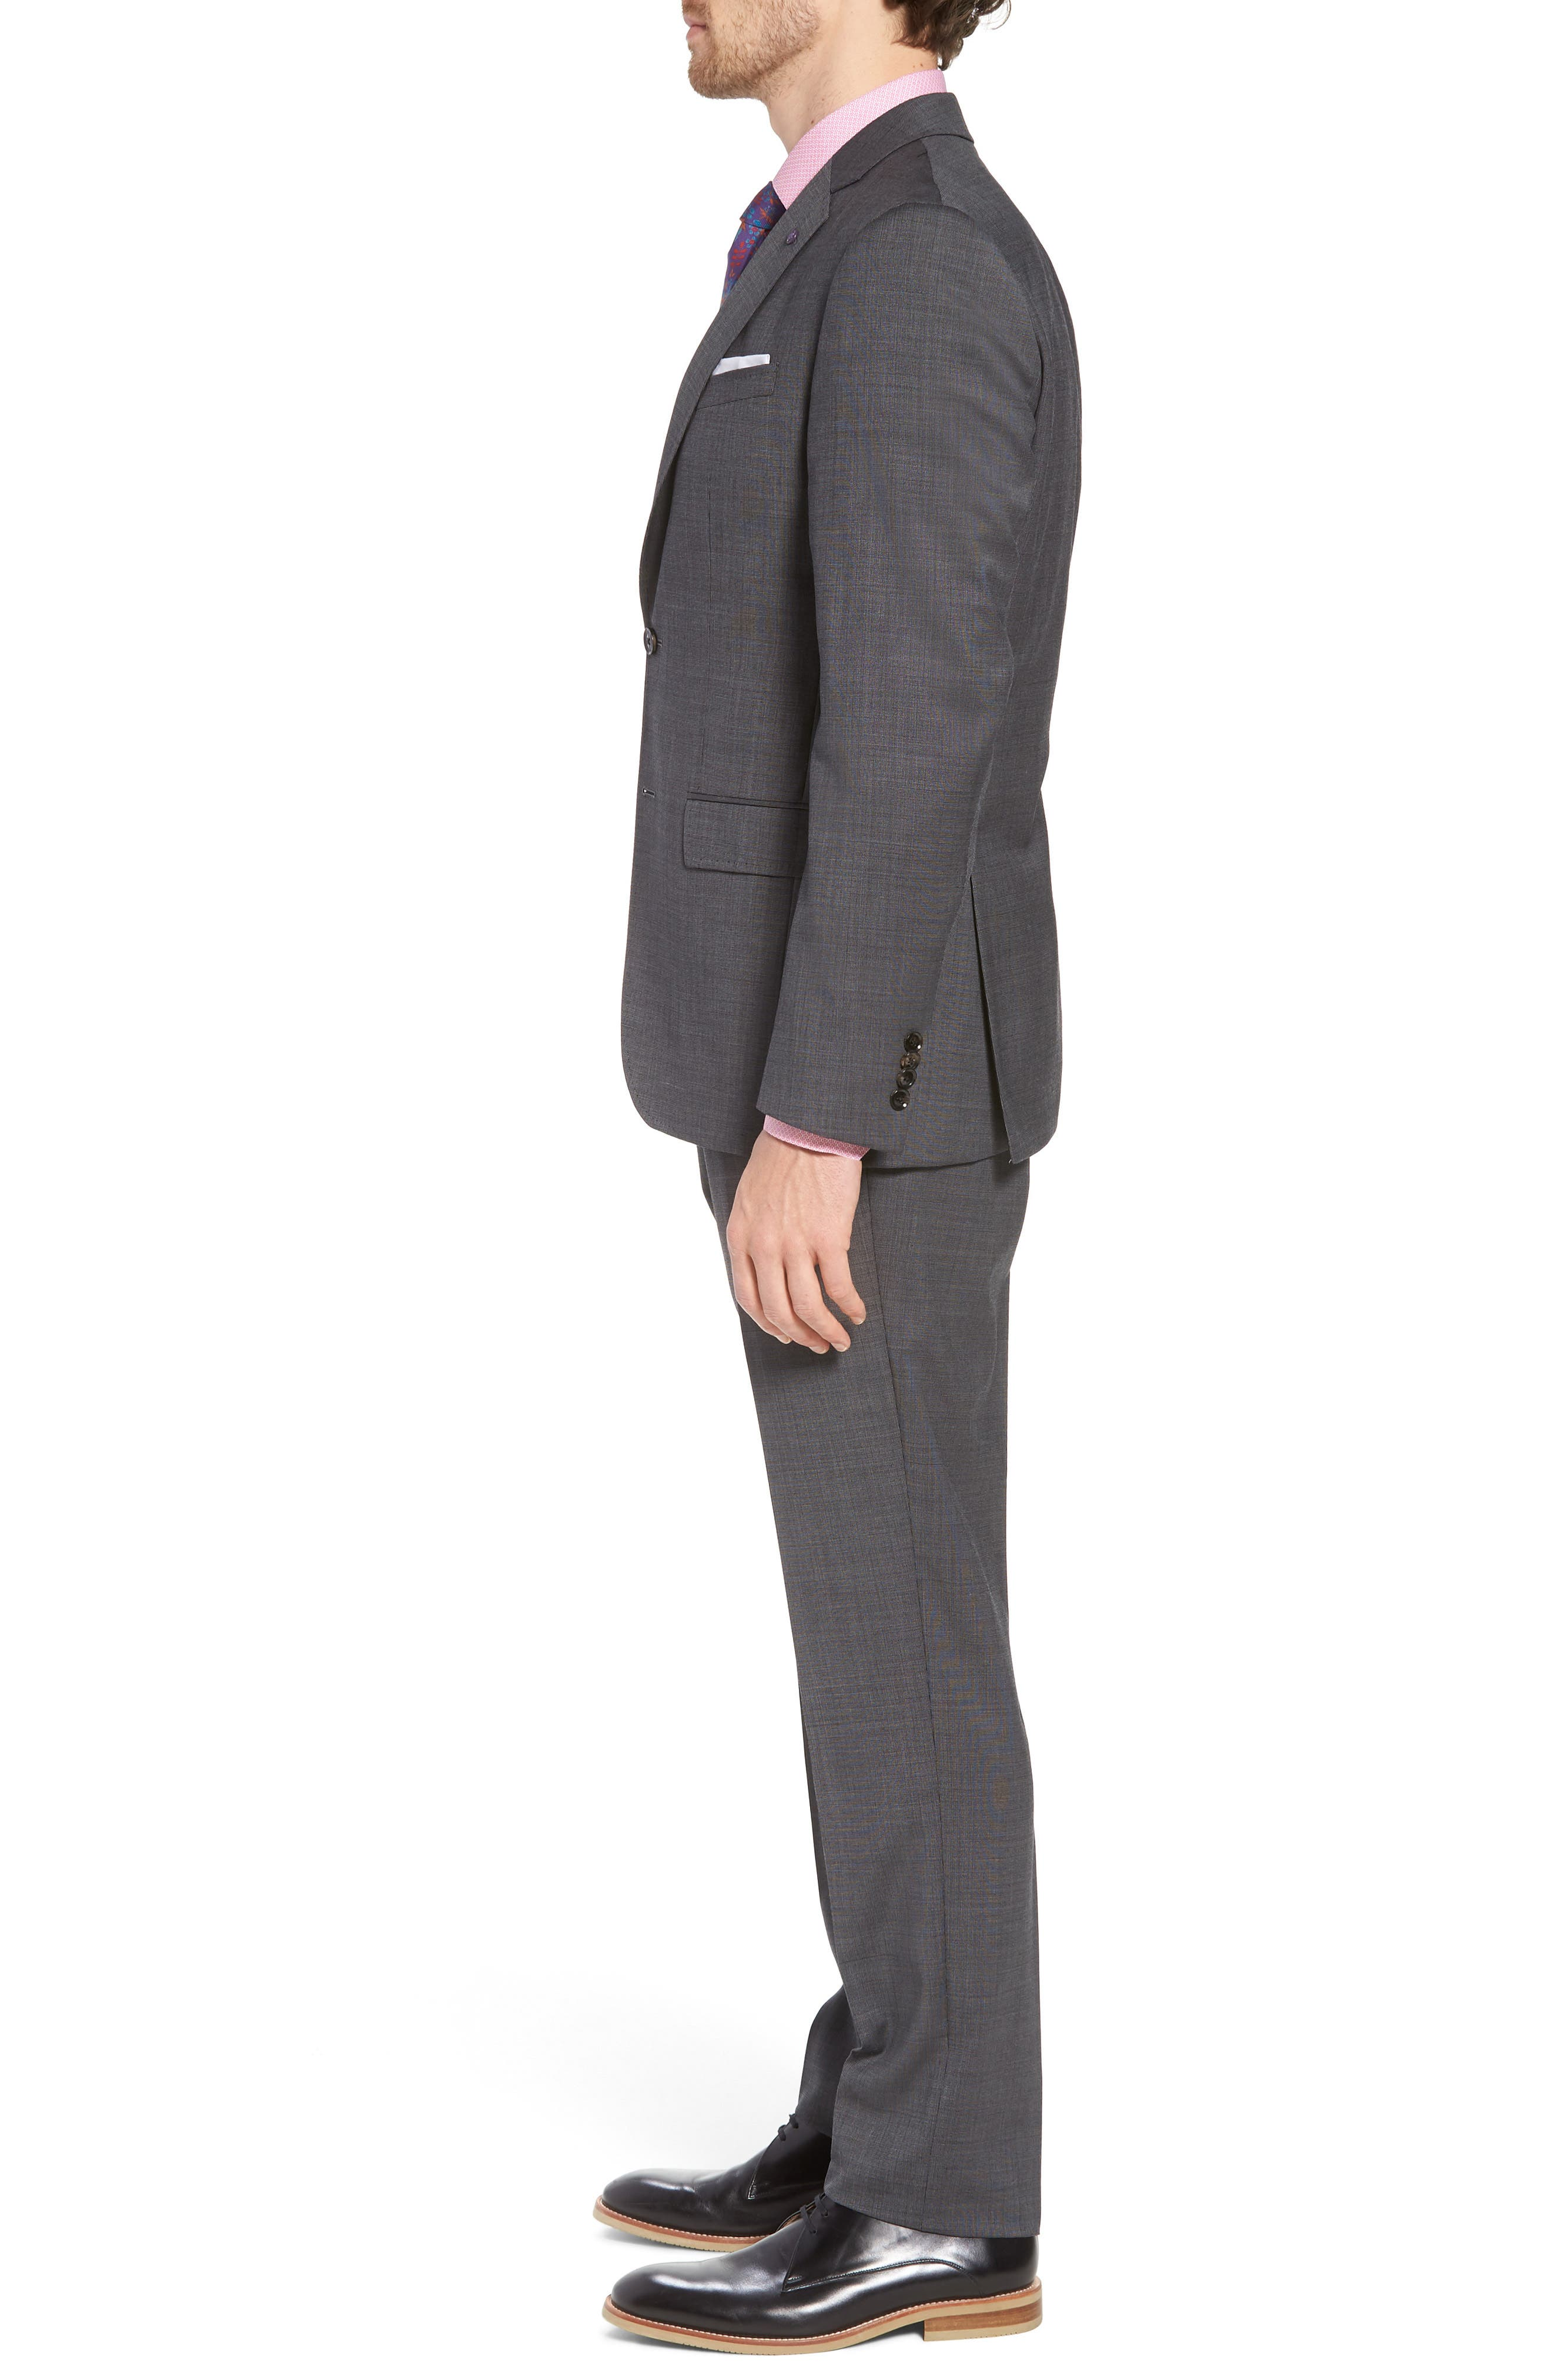 Jay Trim Fit Solid Wool Suit,                             Alternate thumbnail 3, color,                             Grey